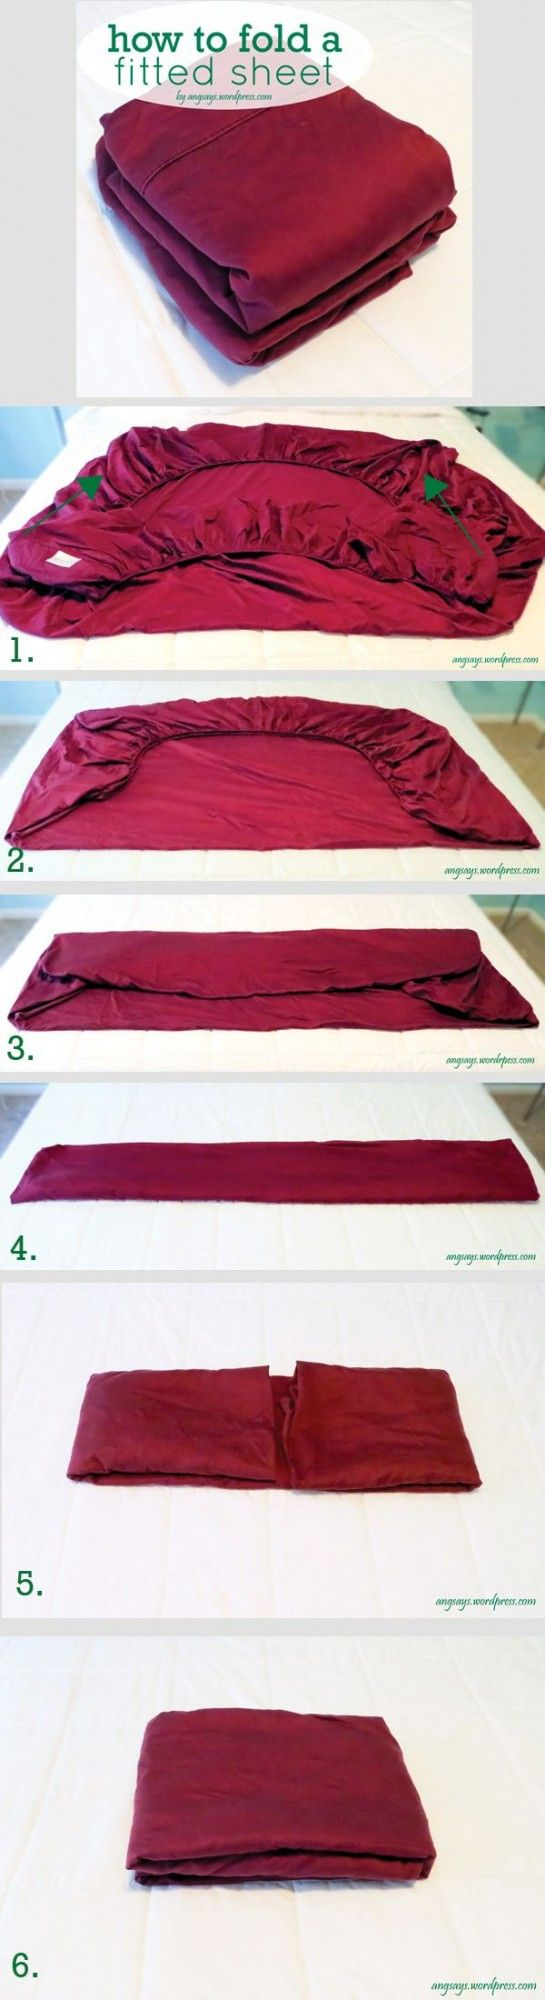 How To Fold a Fitted Sheet Perfectly Like A Pro... Dare I attempt to try again ;)